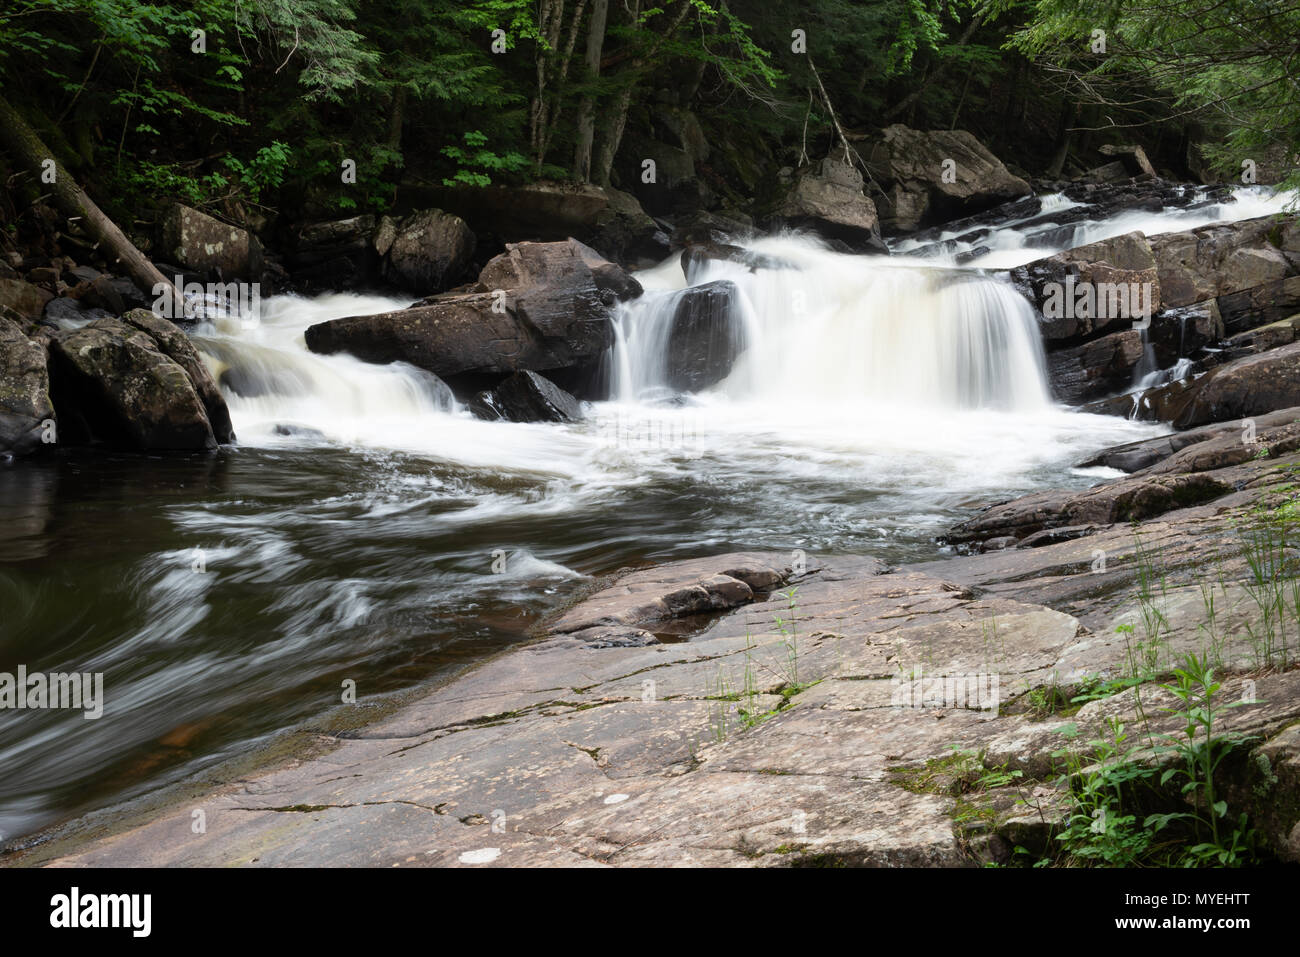 A long exposure of Austin Falls waterfall on the Sacandaga River in the Town of Wells, NY USA - Stock Image